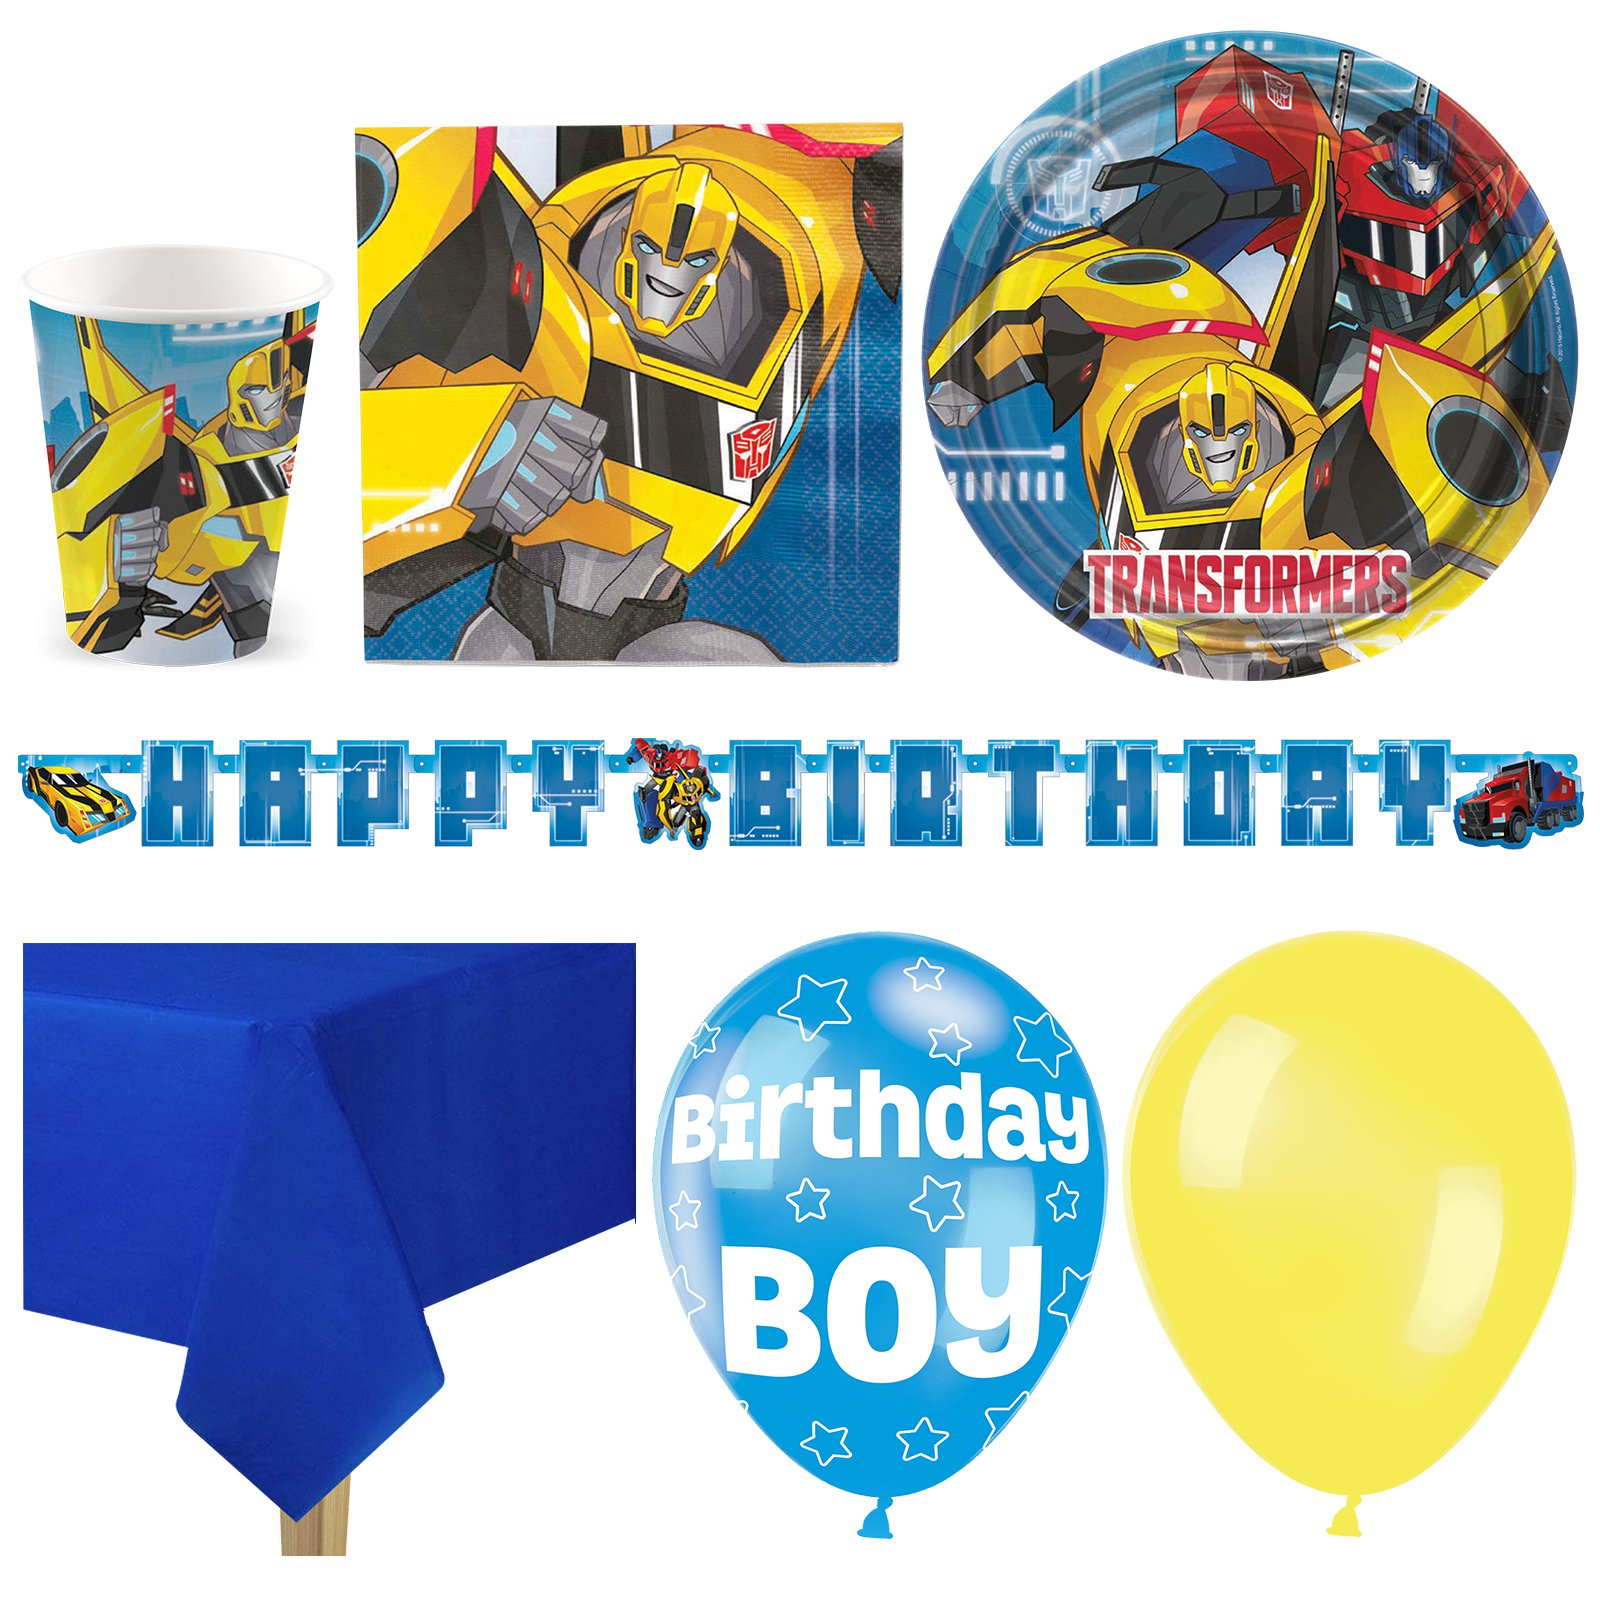 Transformers-Kids-Birthday-Party-Pack-Tableware-Kits-For-8-or-16-Guests